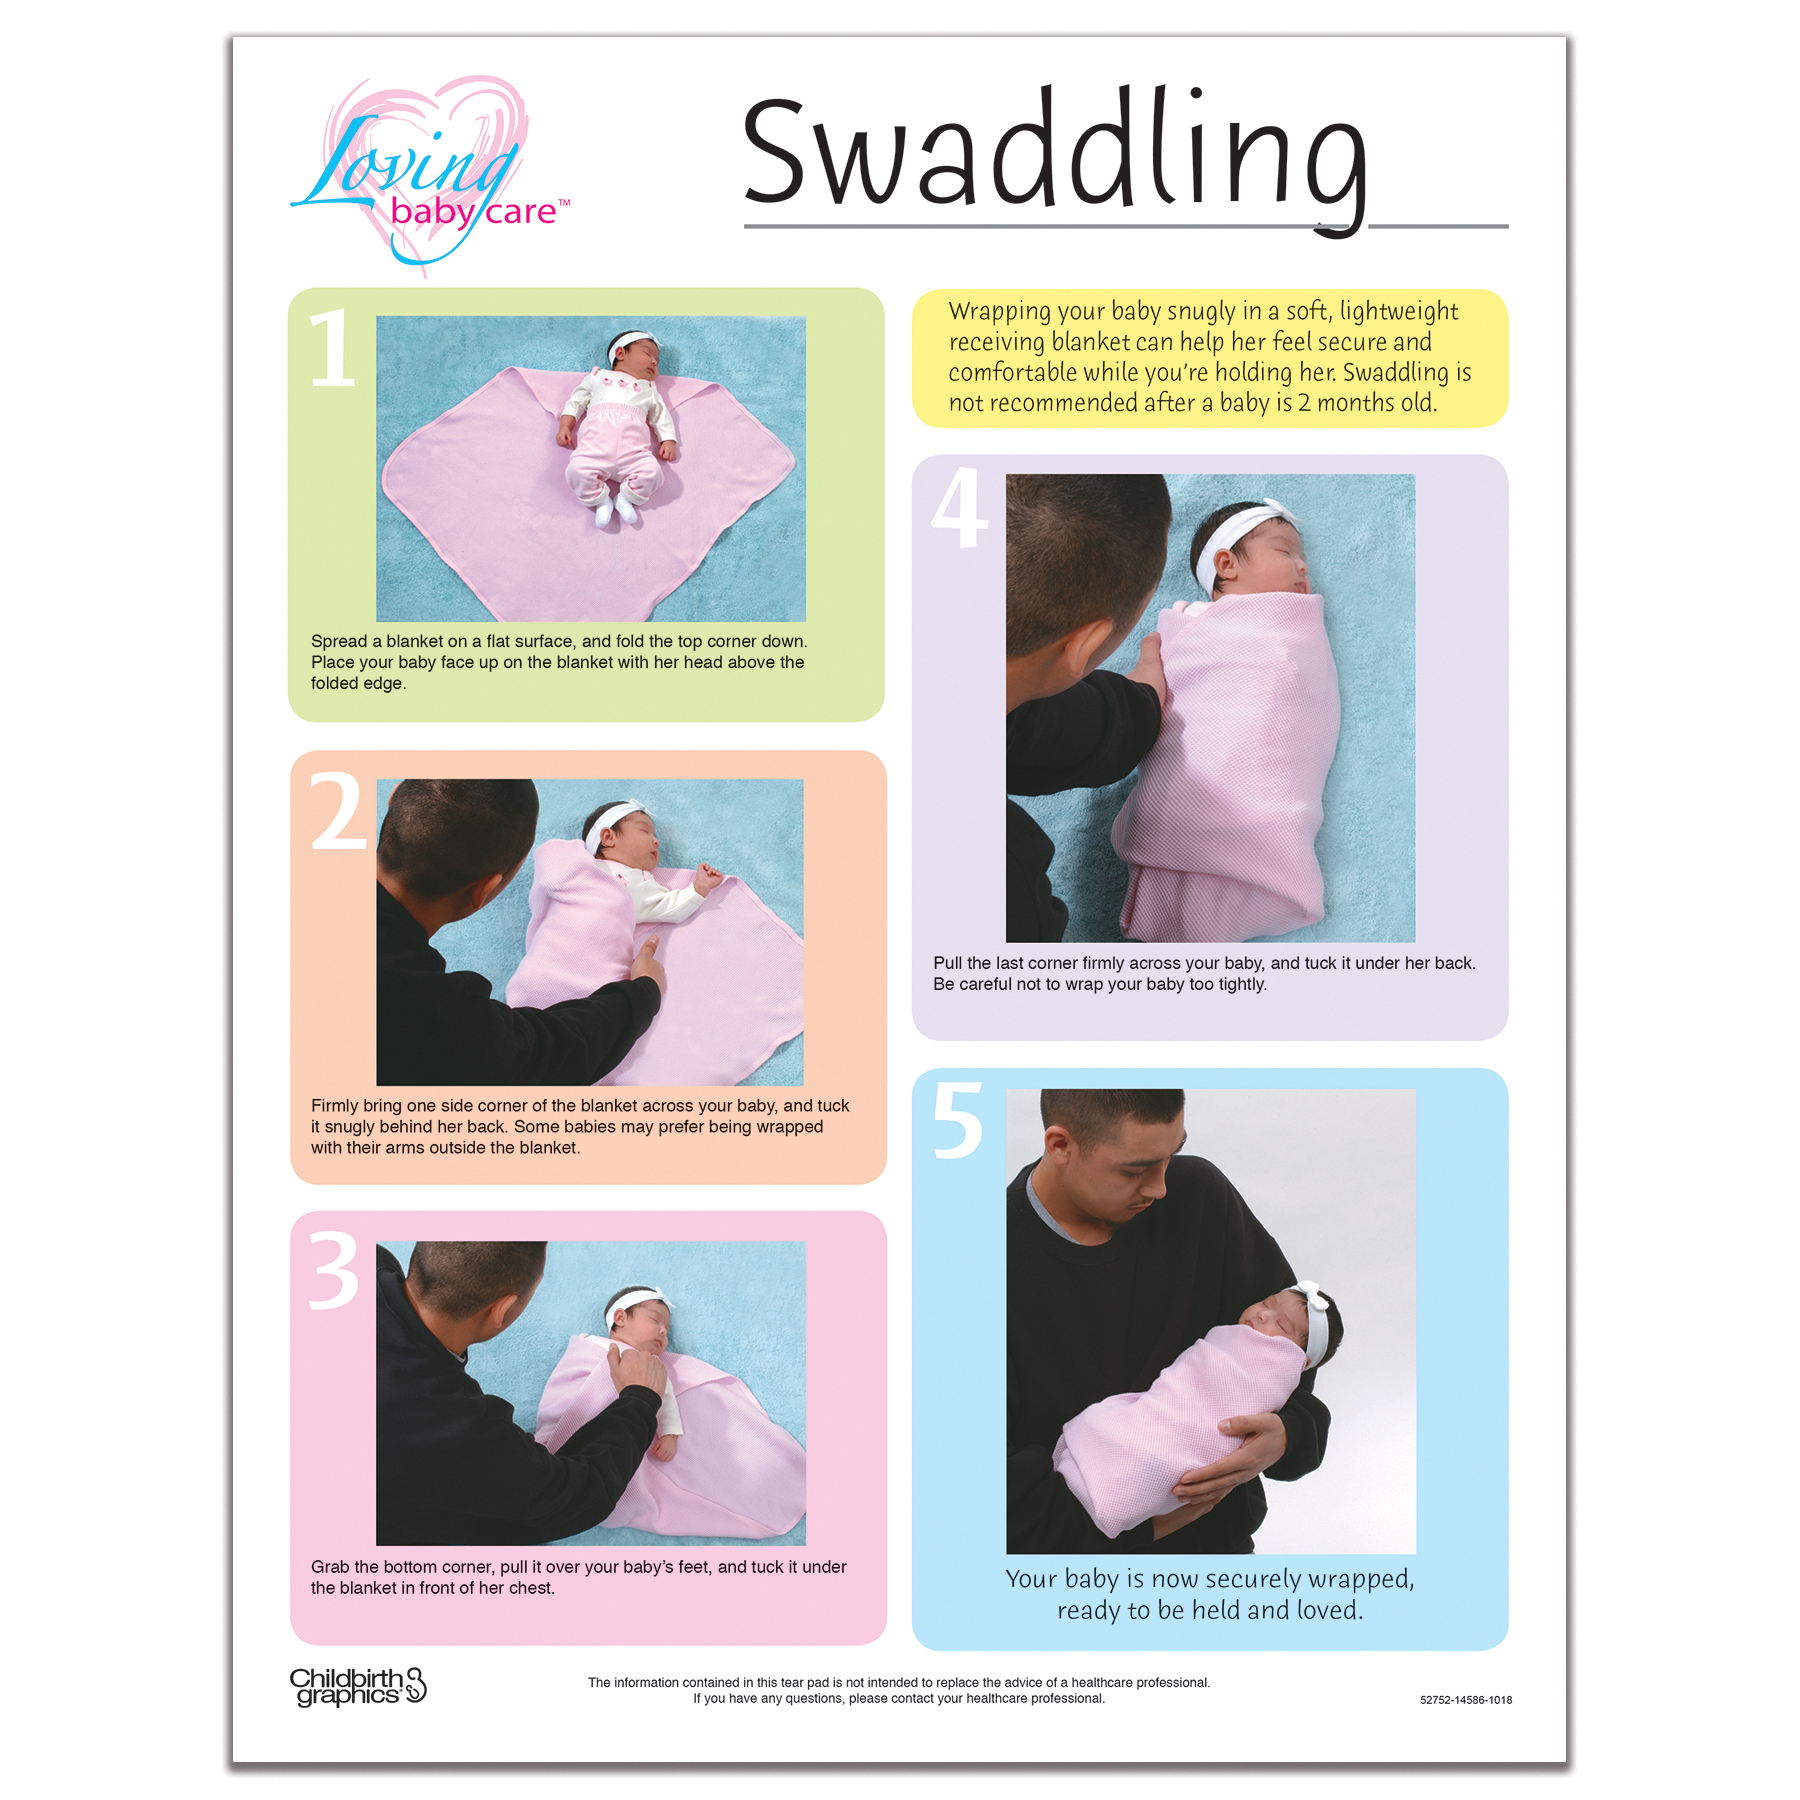 Swaddling your baby full color tear pad front, 5 step photographed swaddling process, Childbirth Graphics 52752